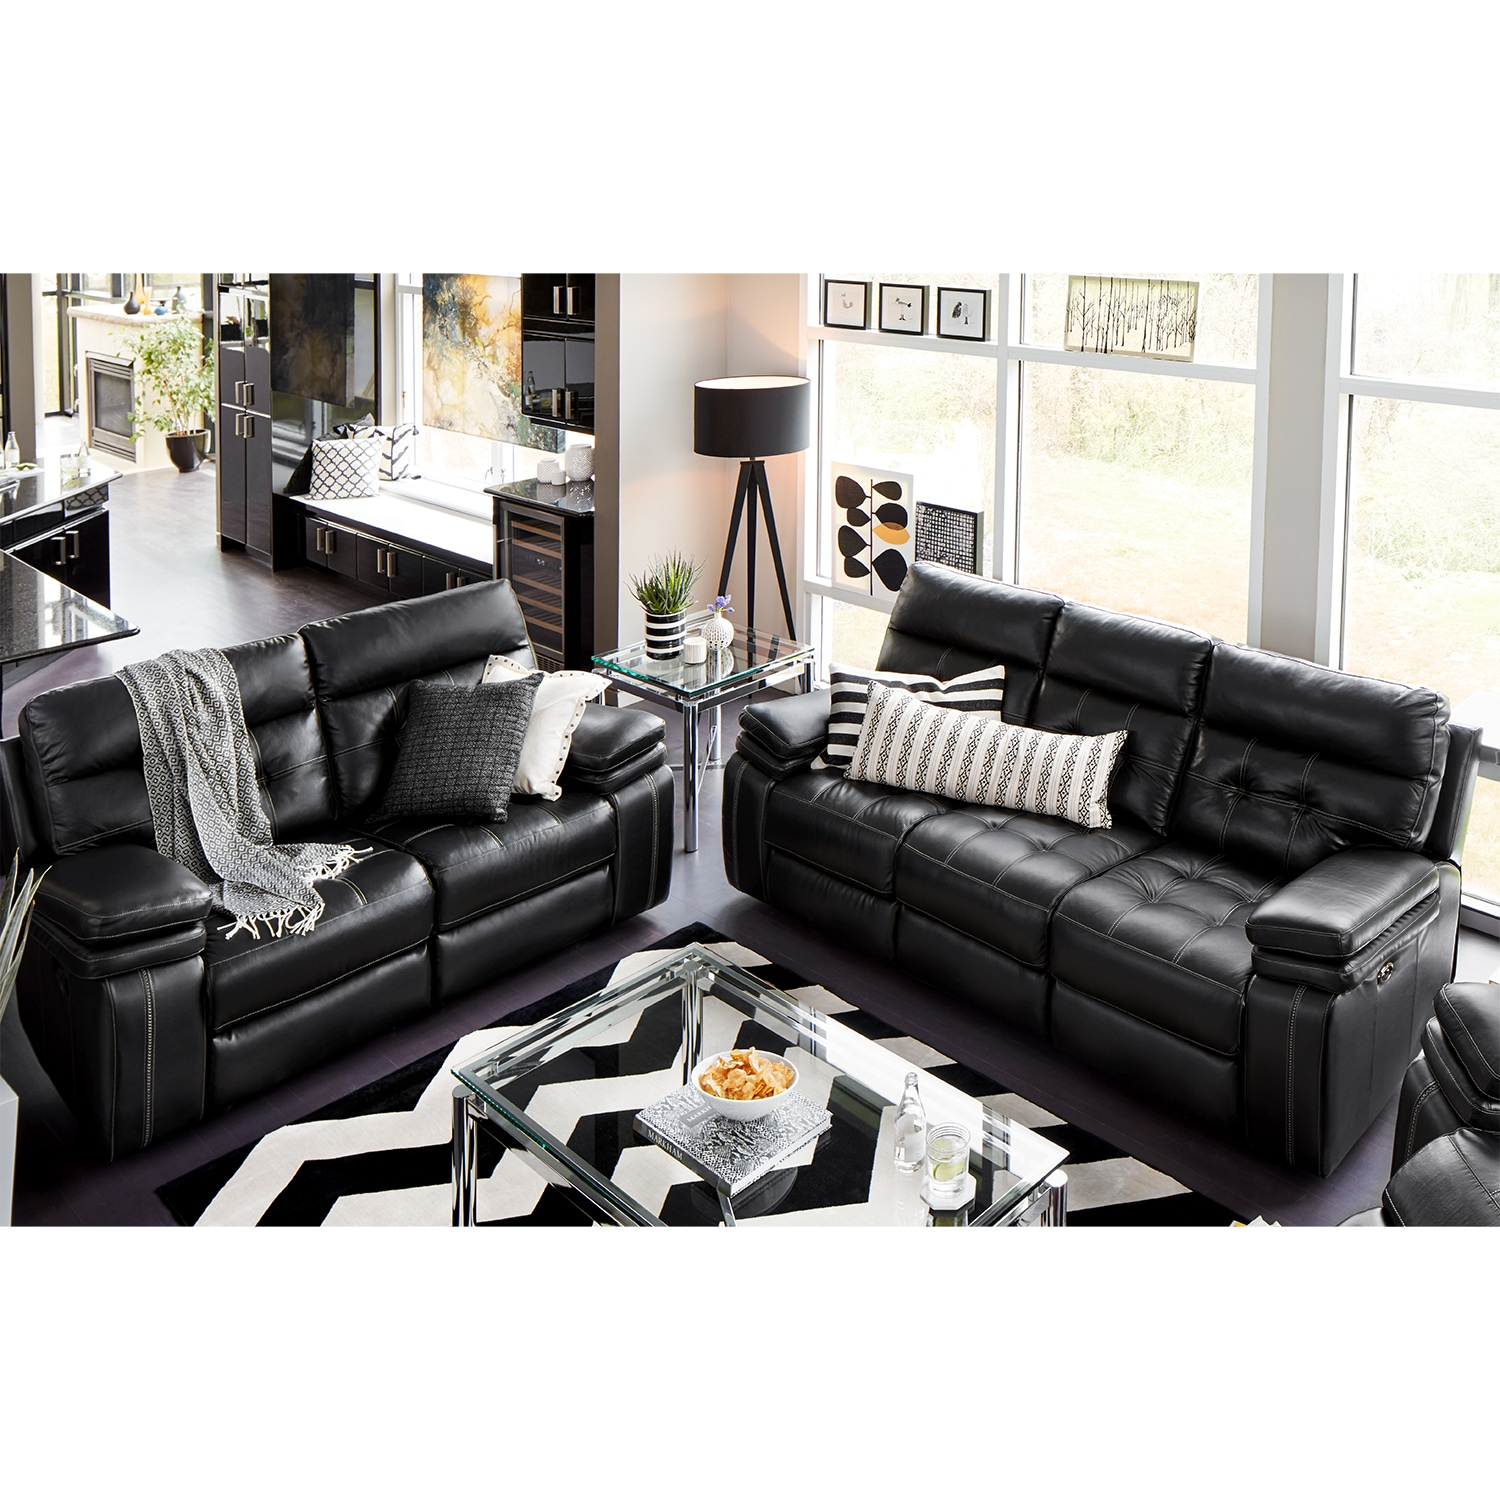 American Signature Furniture Com: Brisco Power Reclining Sofa And Reclining Loveseat Set